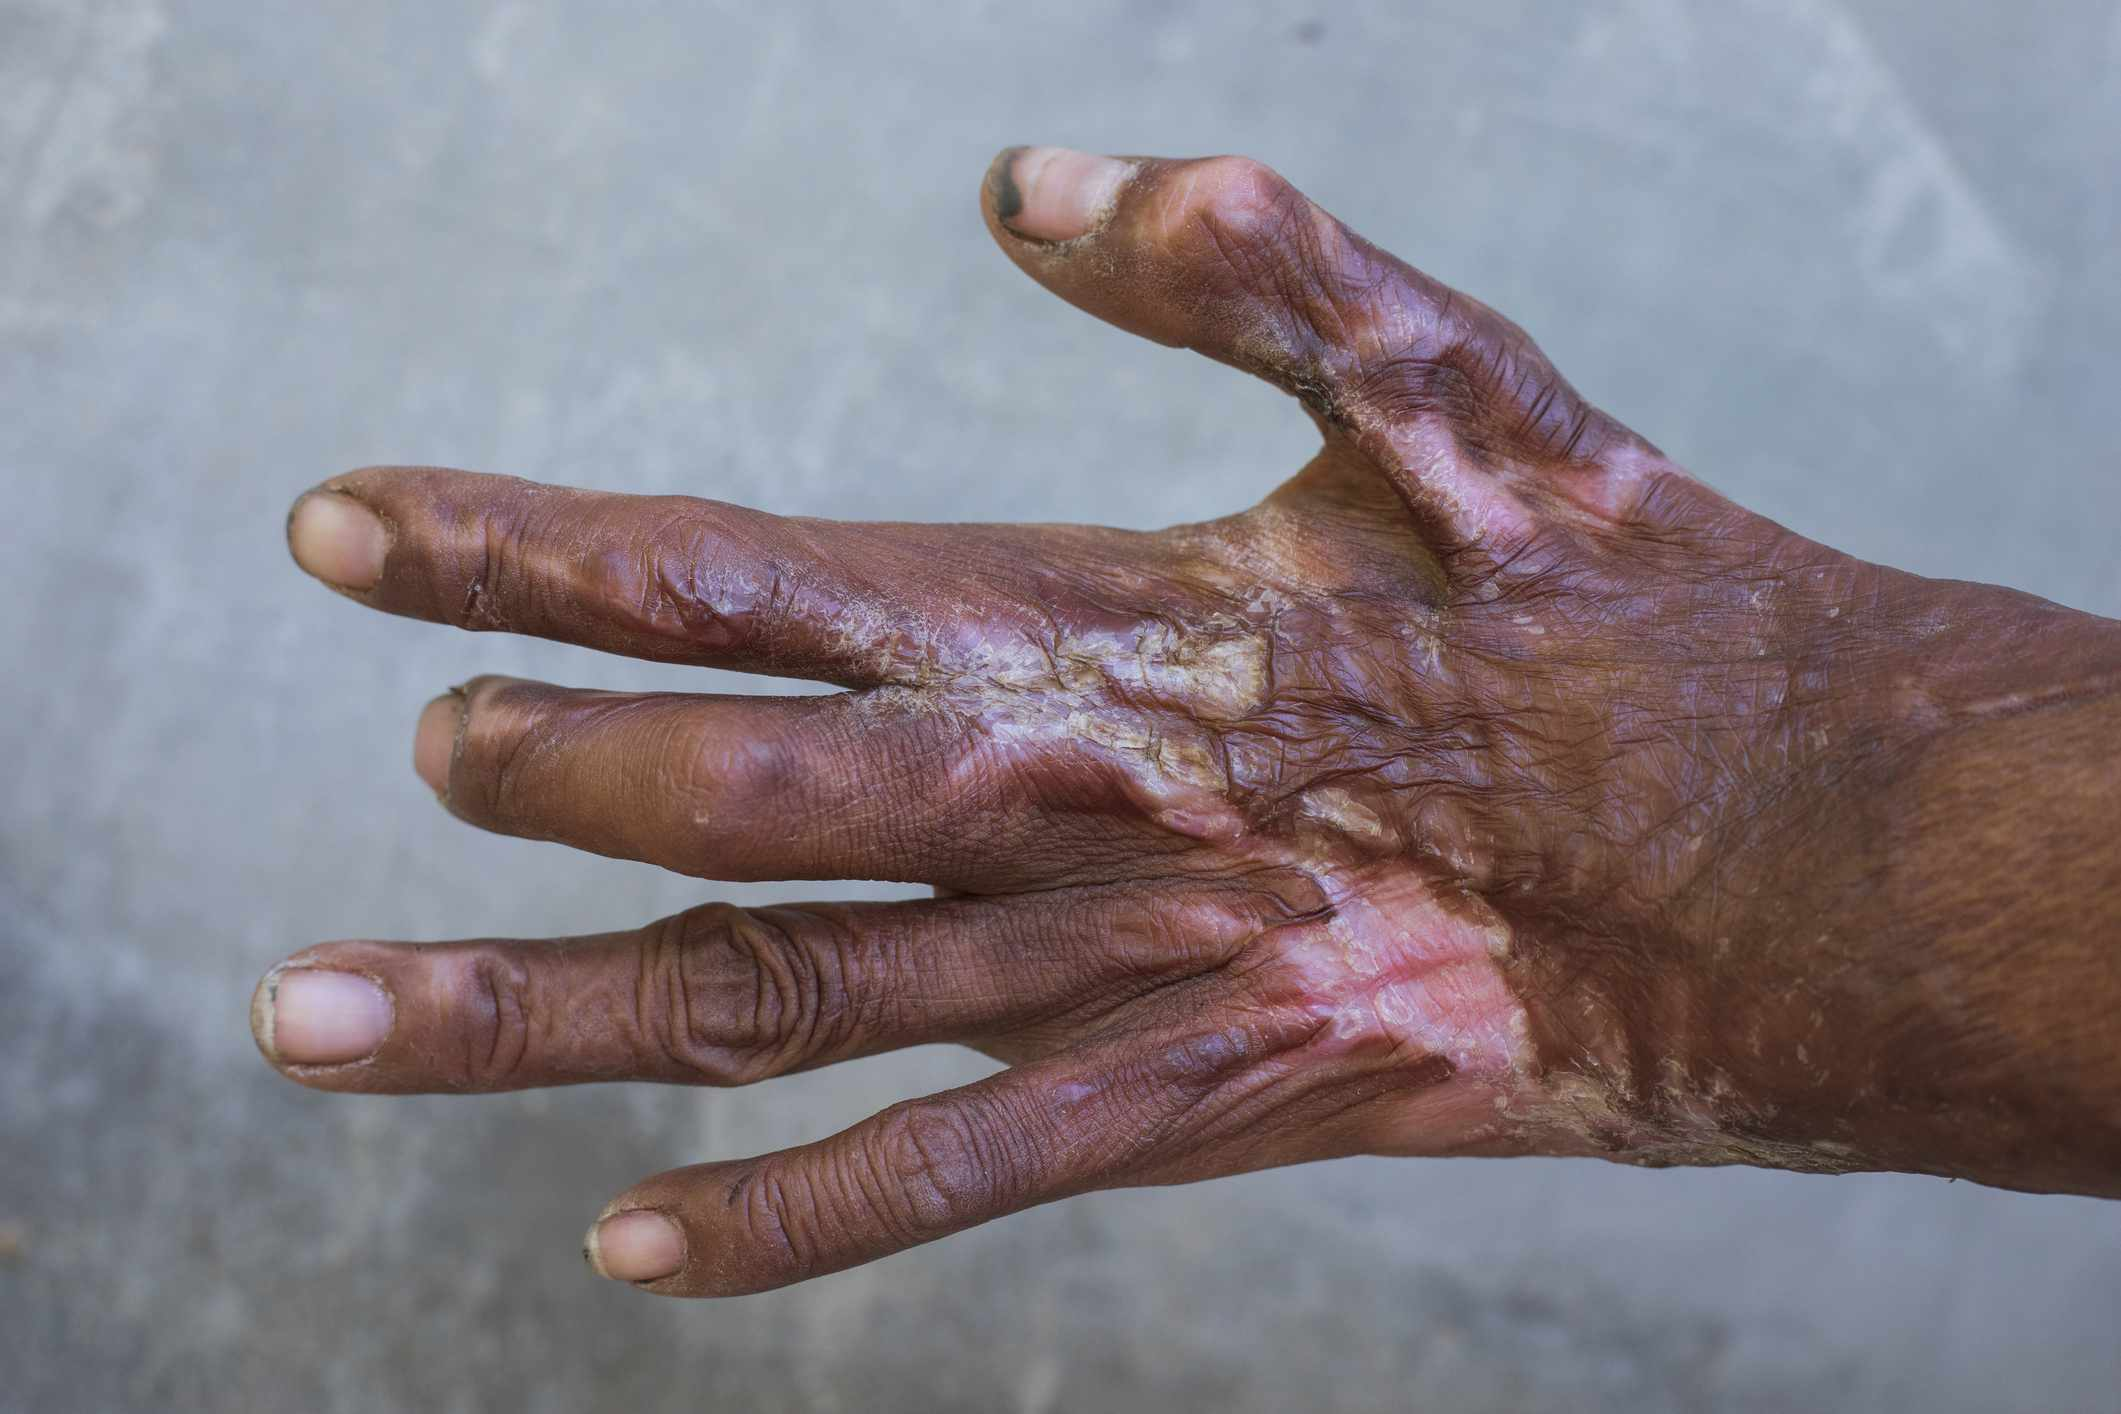 Severely injured hand from scald or accident,Hands that are scar after surgery